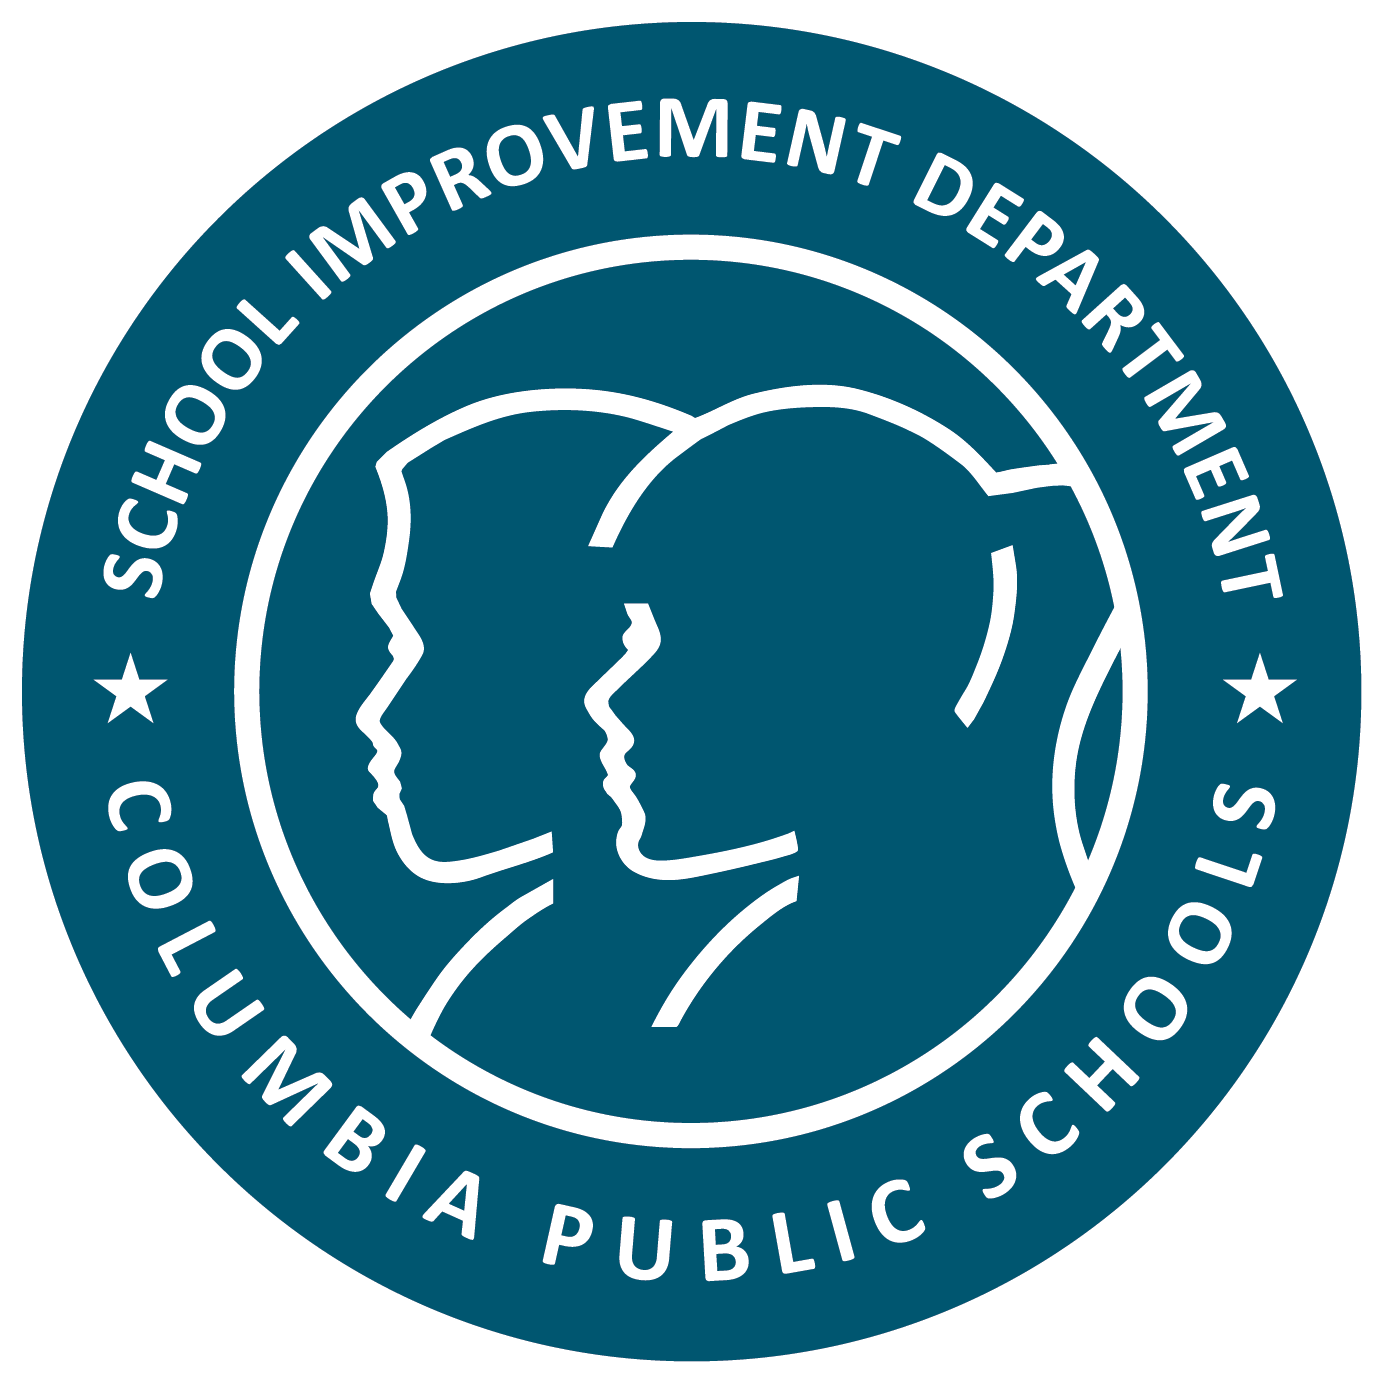 SchoolImprovementDepartmentLogo""